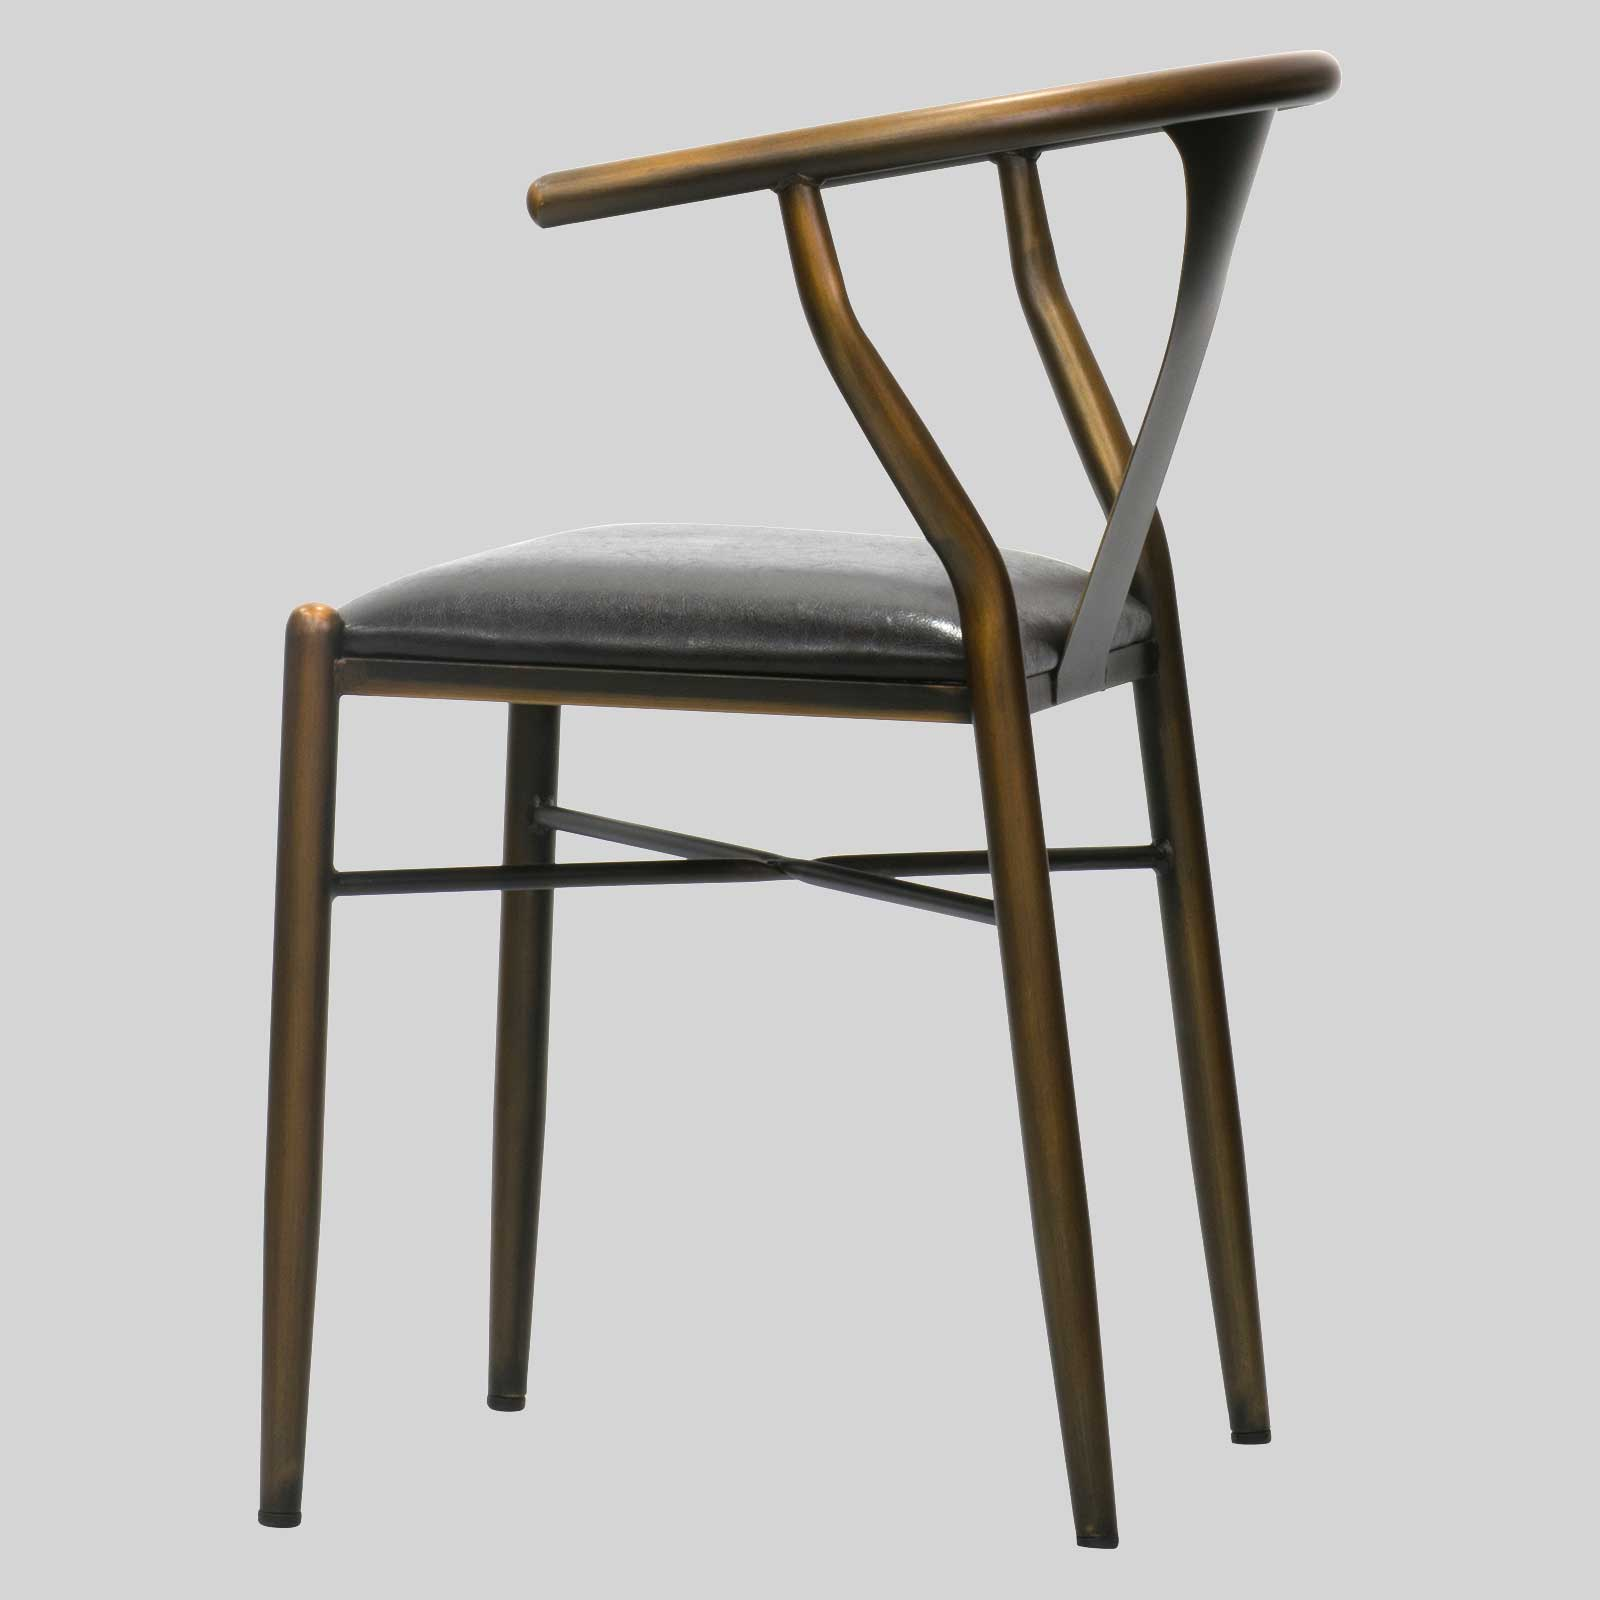 Restaurant chair in distressed copper the Coleman Chair